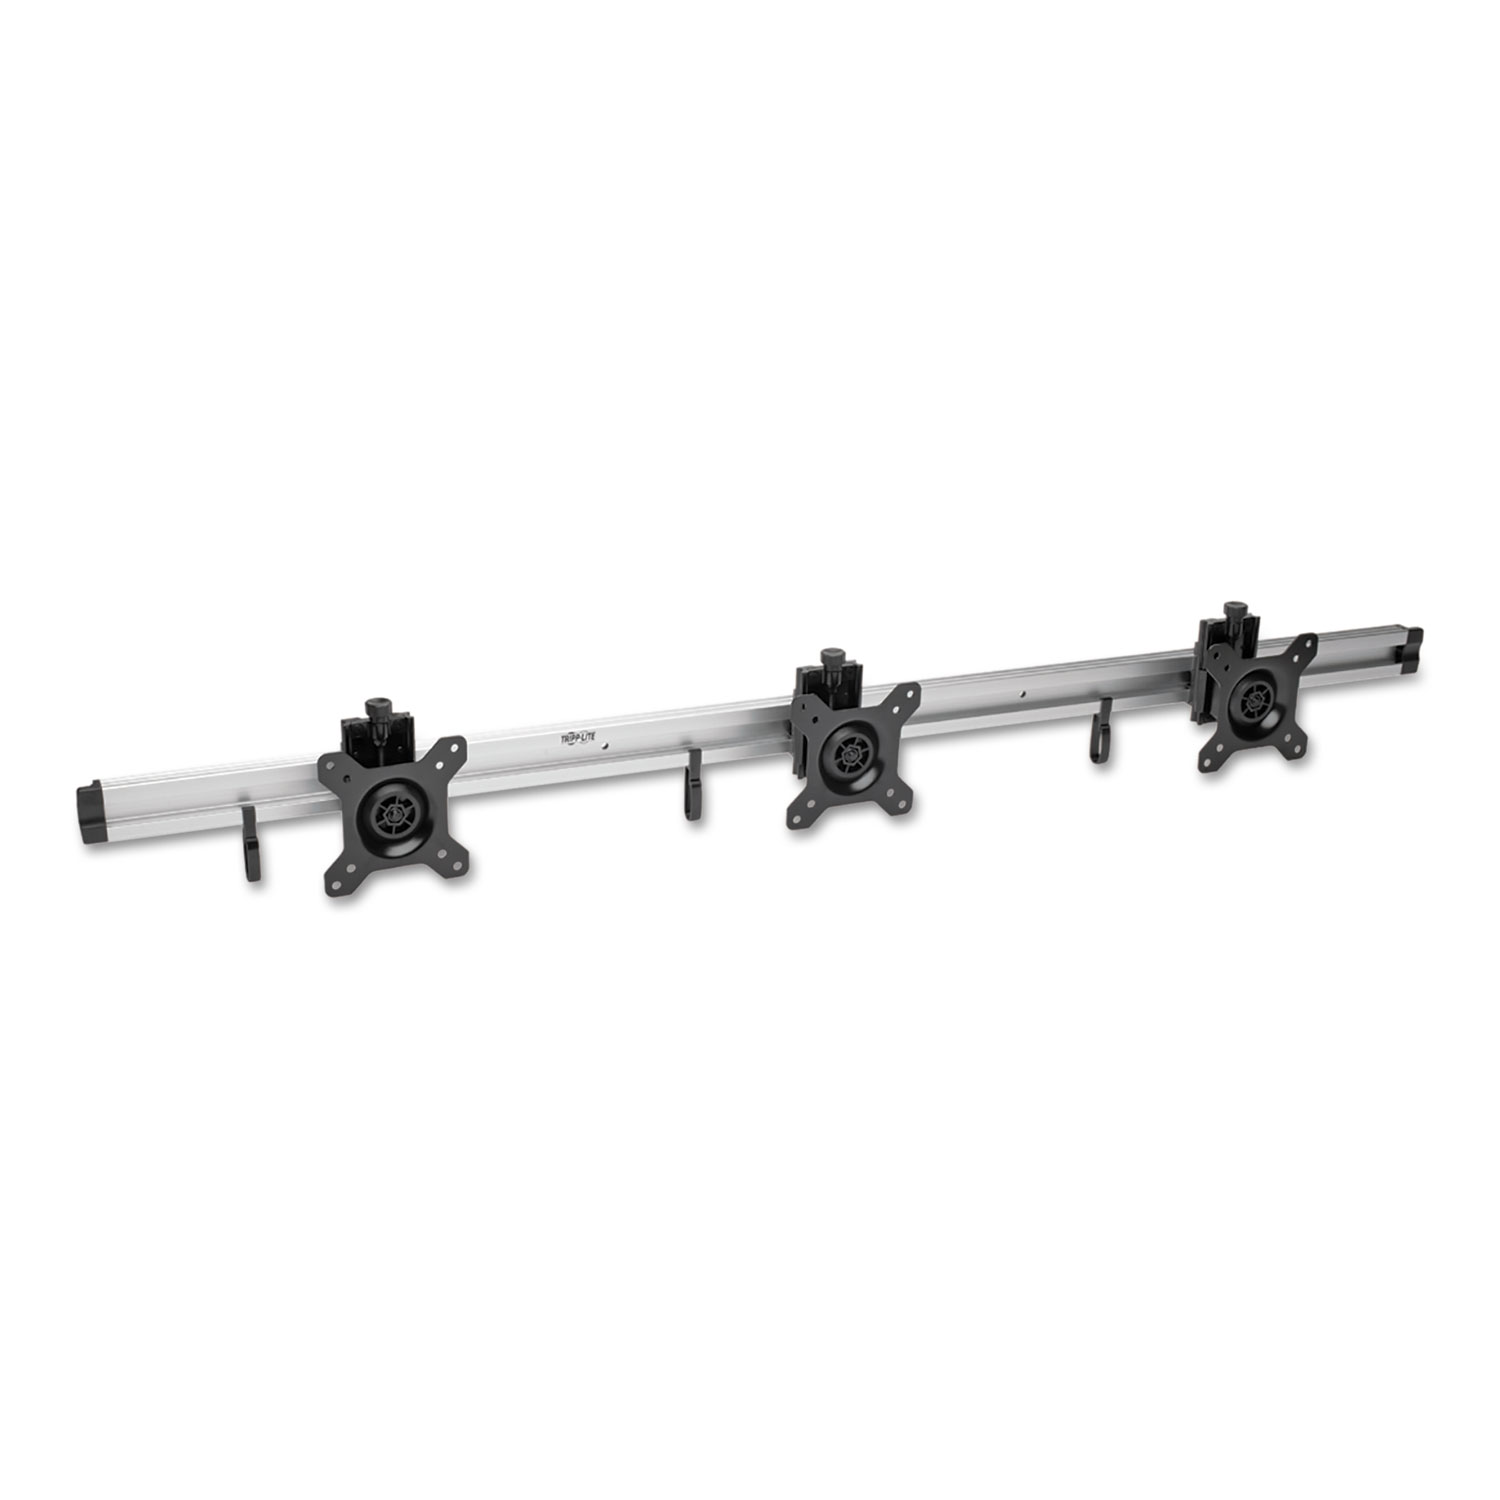 "Triple Flat-Panel Rail Wall Mount, For 10"" To 15"" TVs/Monitors, Up To 18 Lbs"